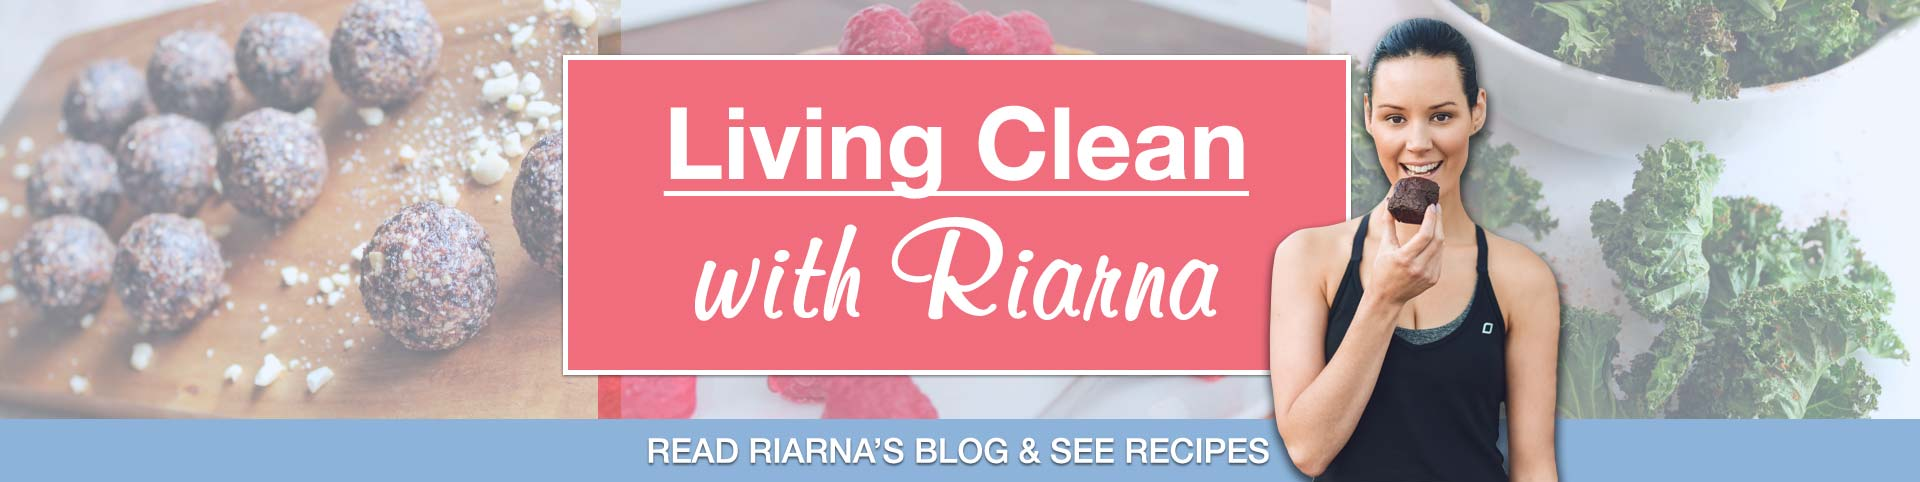 Living clean with Riarna | Puratap | Water Filters Specialist in Adelaide